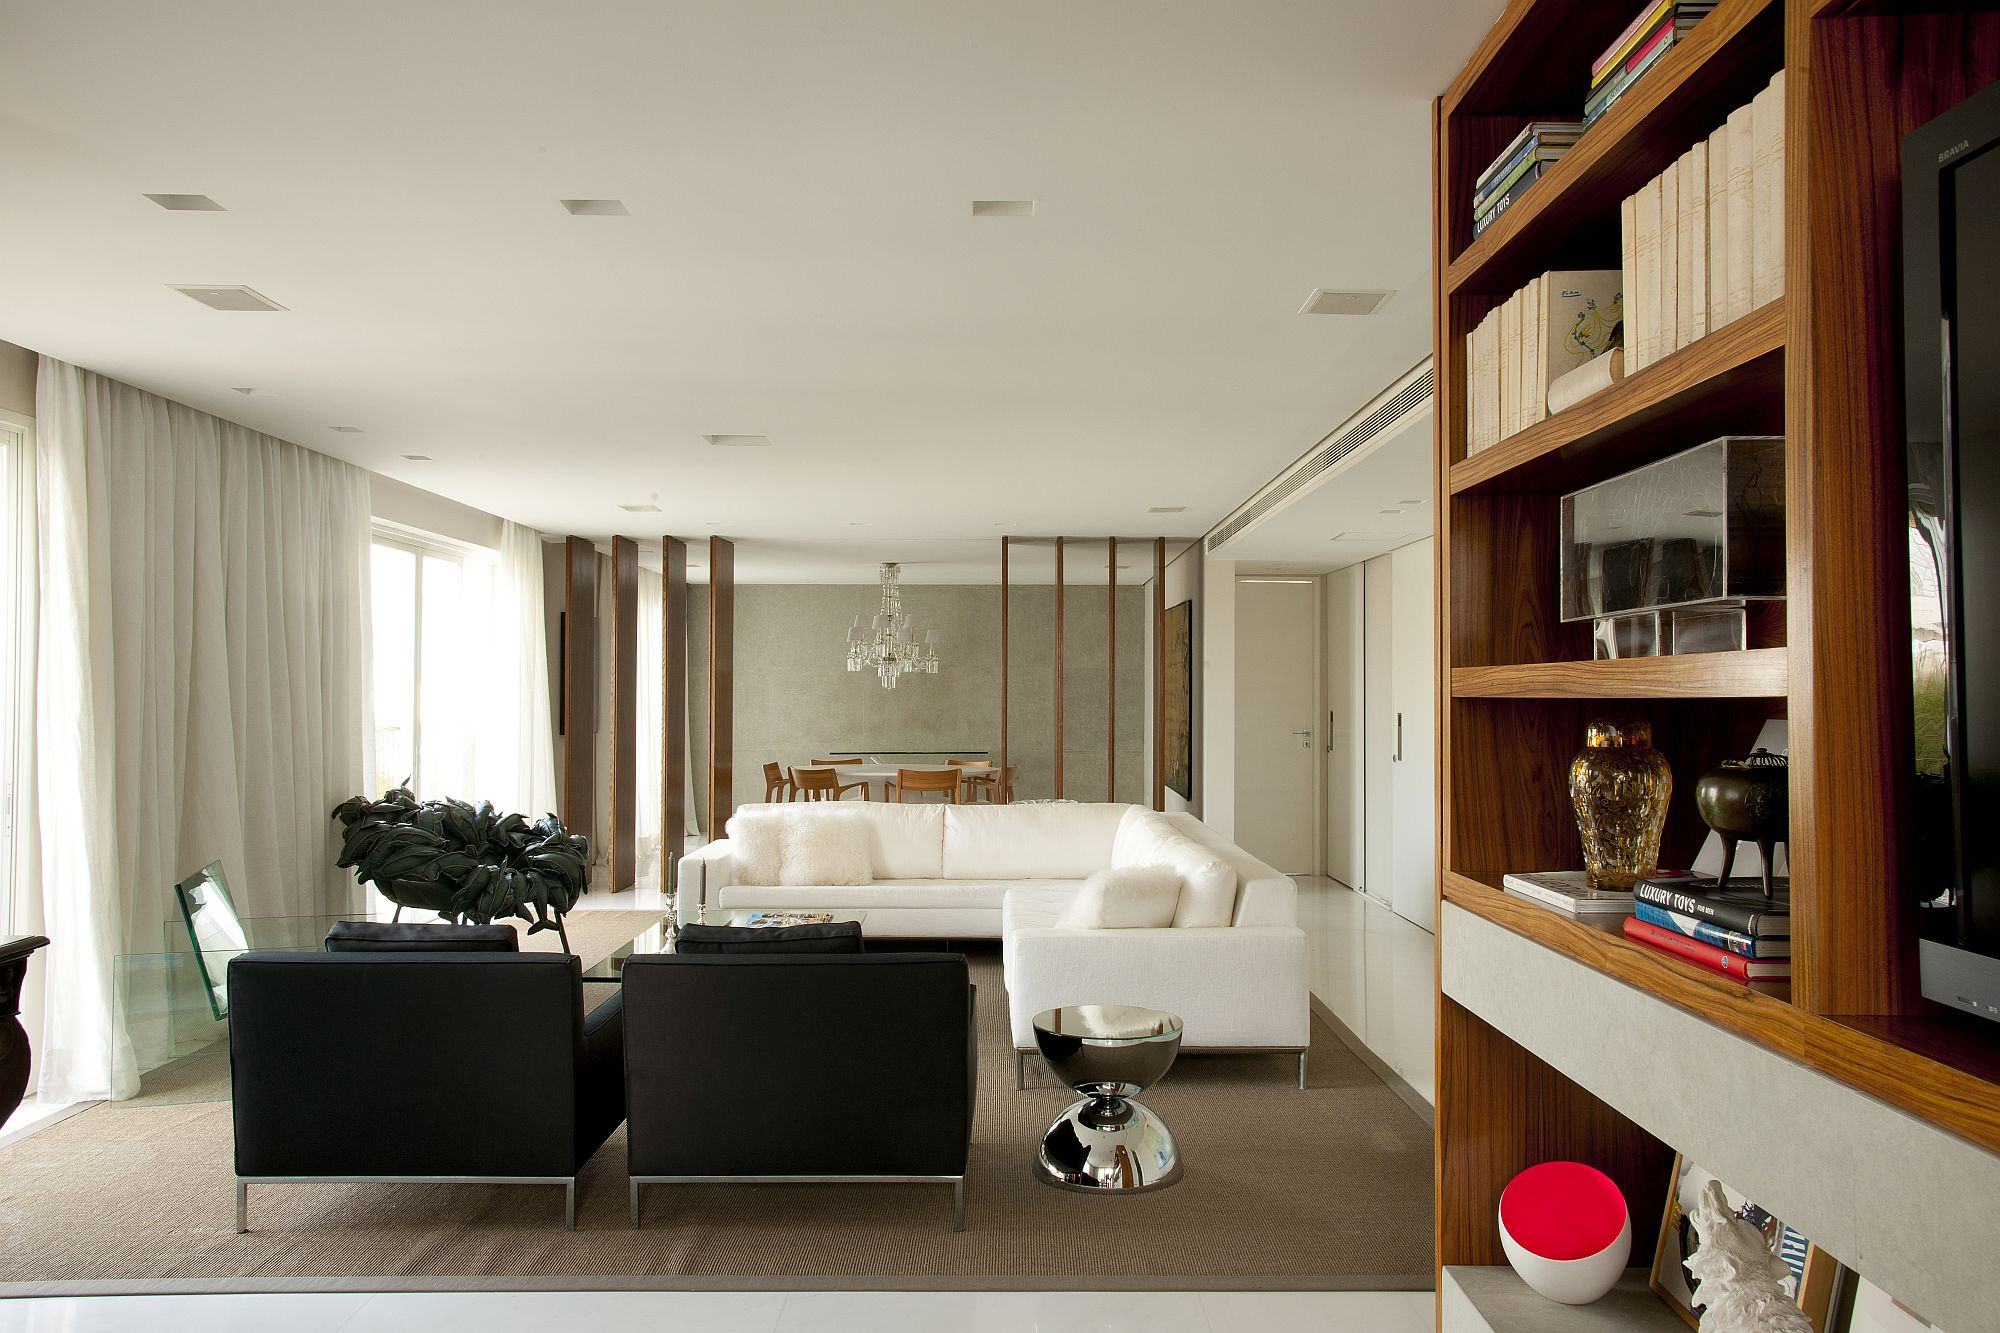 Stunningly Sophisticated Penthouse In Sao Paulo Designed For The Newly Wed